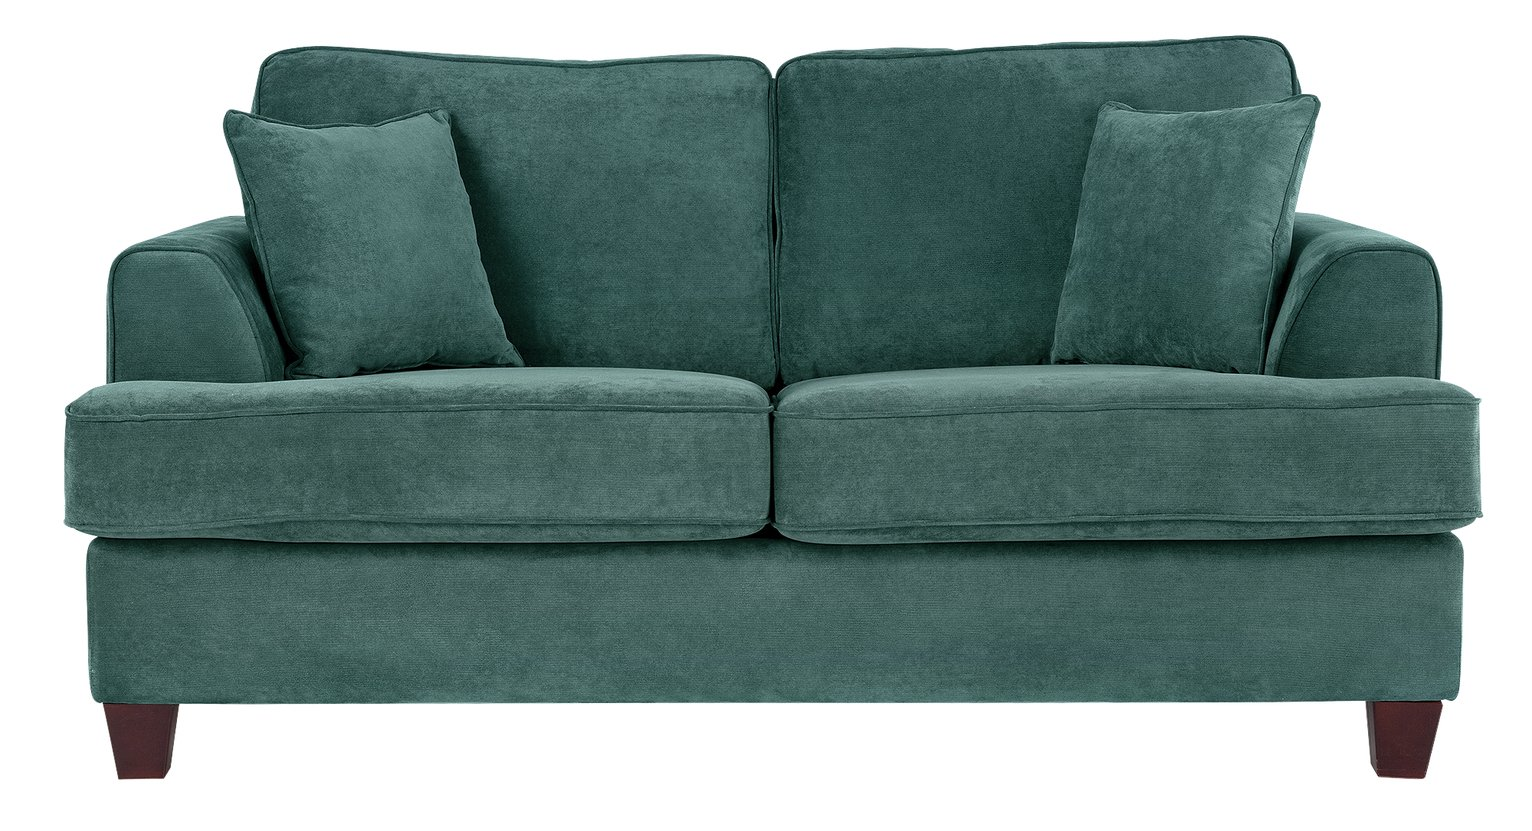 Heart of House Hampstead 2 Seater Fabric Sofa Bed - Ocean. from Create Your Own